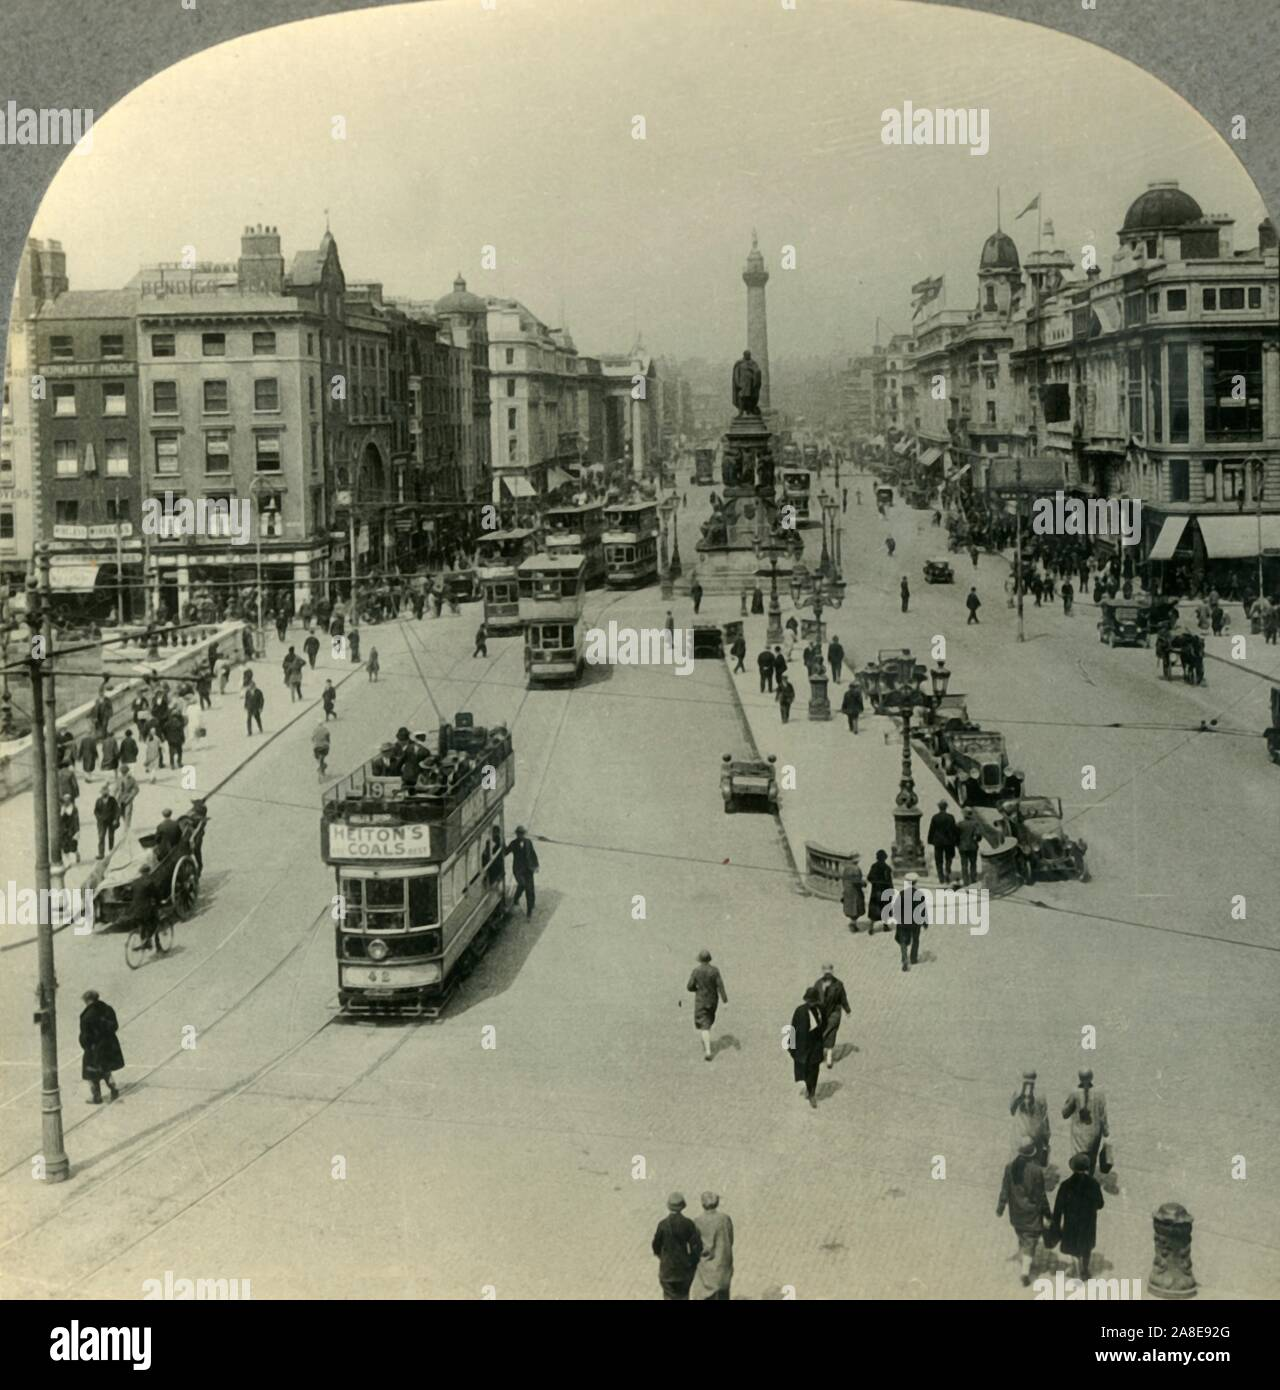 """'The O'Connell Monument and the Nelson Pillar, O'Connell Street, Dublin, Ireland', c1930s. Memorial to Daniel O'Connell by John Henry Foley and Nelson's Pillar  damaged by explosives in 1966 on O'Connell Street in Dublin.  From """"Tour of the World"""". [Keystone View Company, Meadville, Pa., New York, Chicago, London] Stock Photo"""